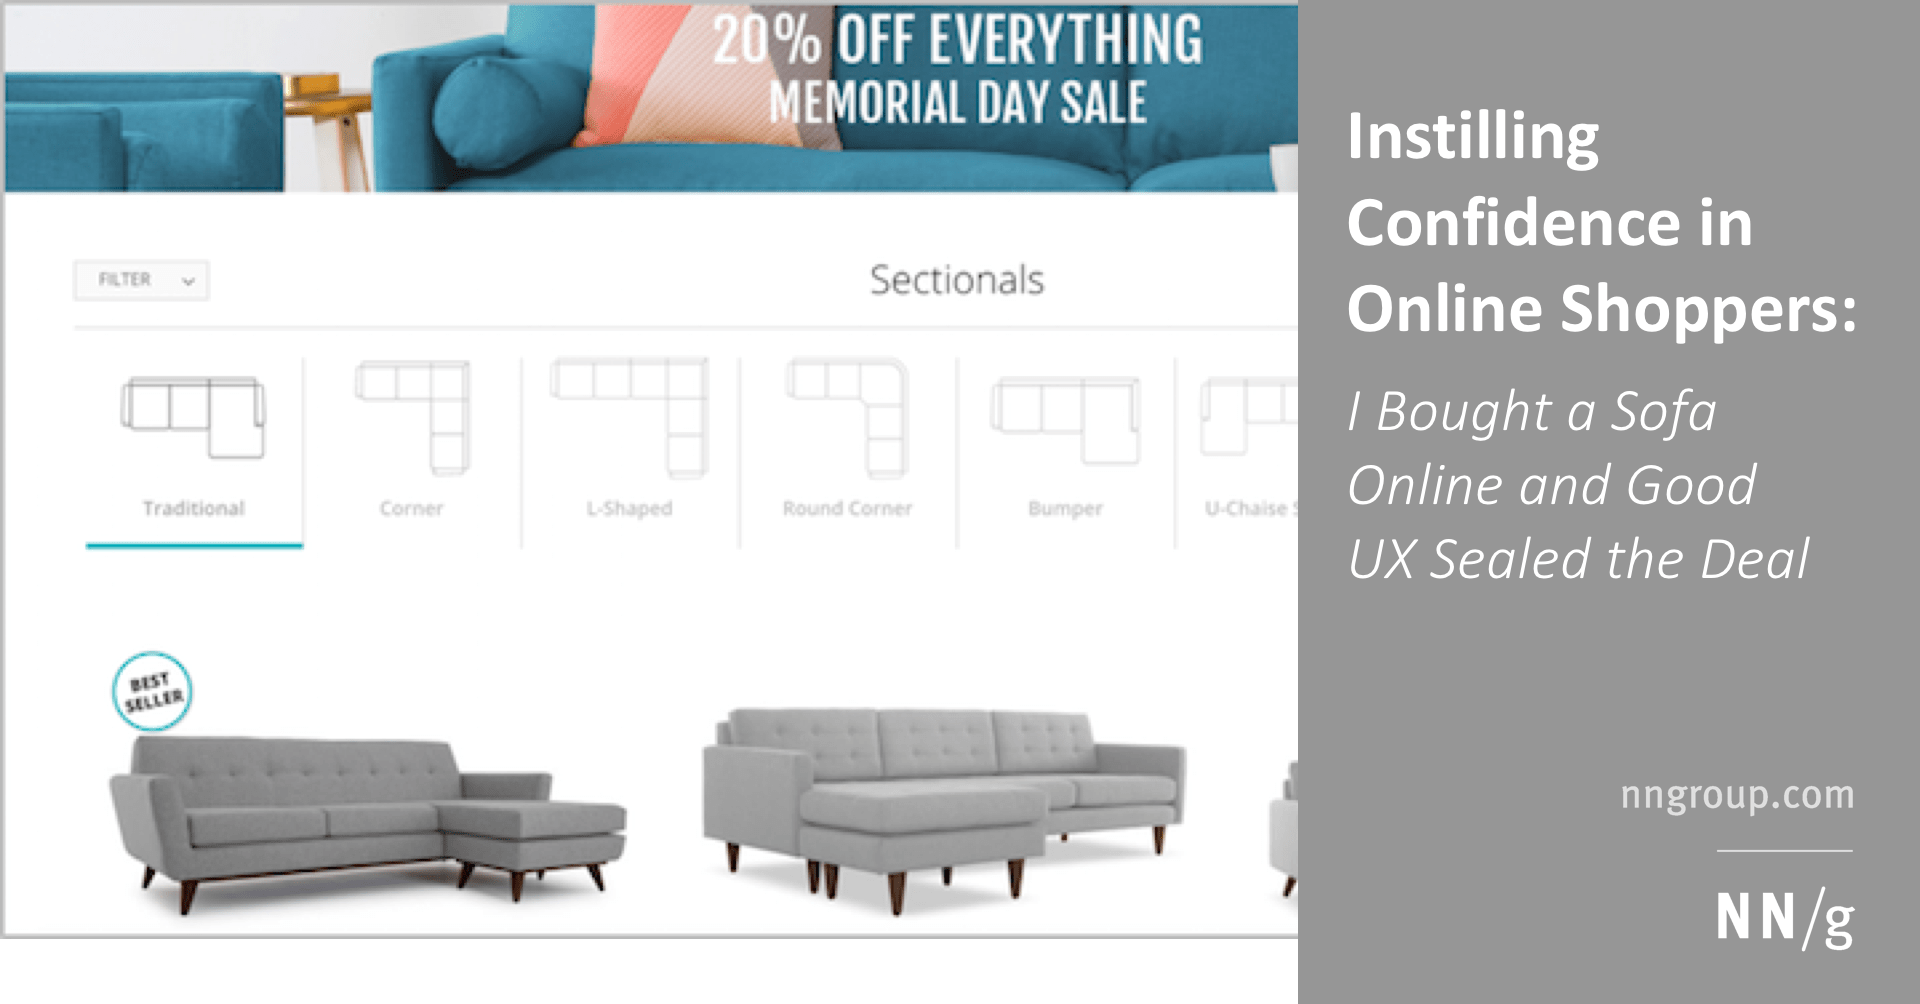 Sofa For Sale Online Instilling Confidence In Online Shoppers I Bought A Sofa Online